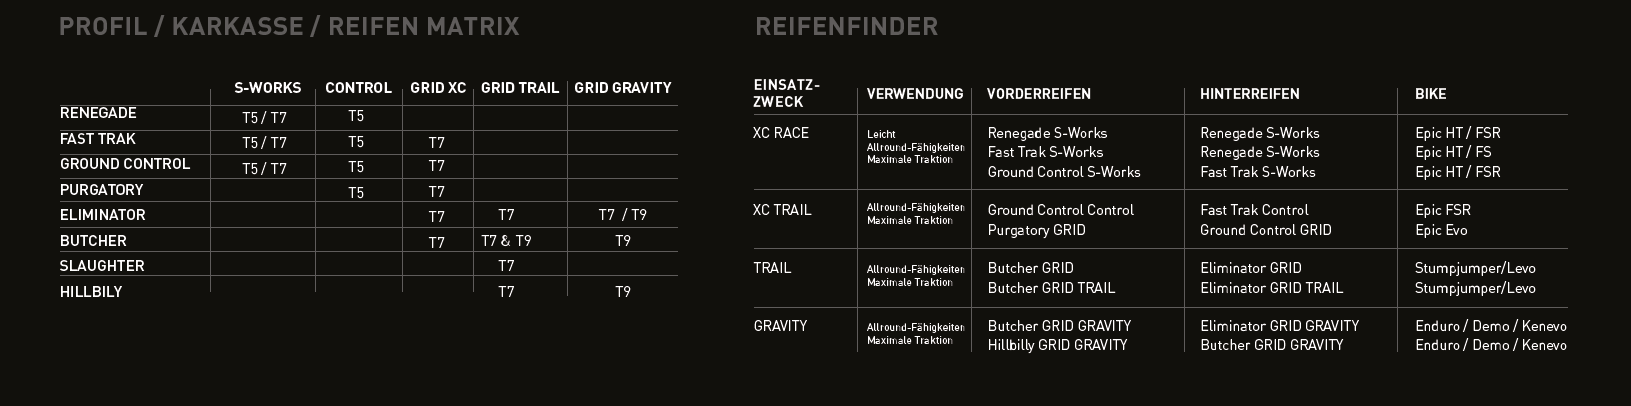 Specialized Reifen-Finder